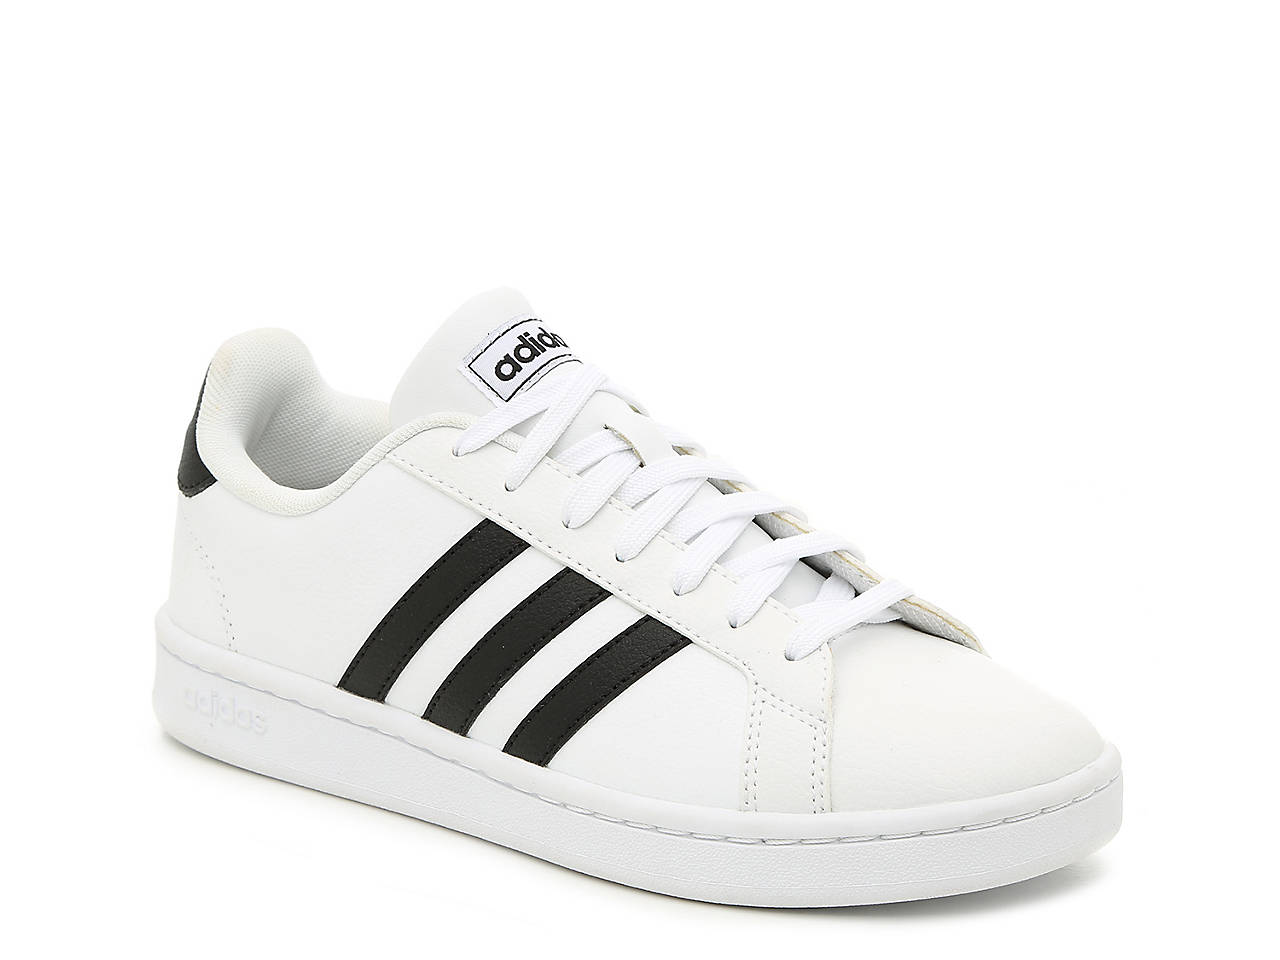 709363a06 adidas Grand Court Sneaker - Women s Women s Shoes